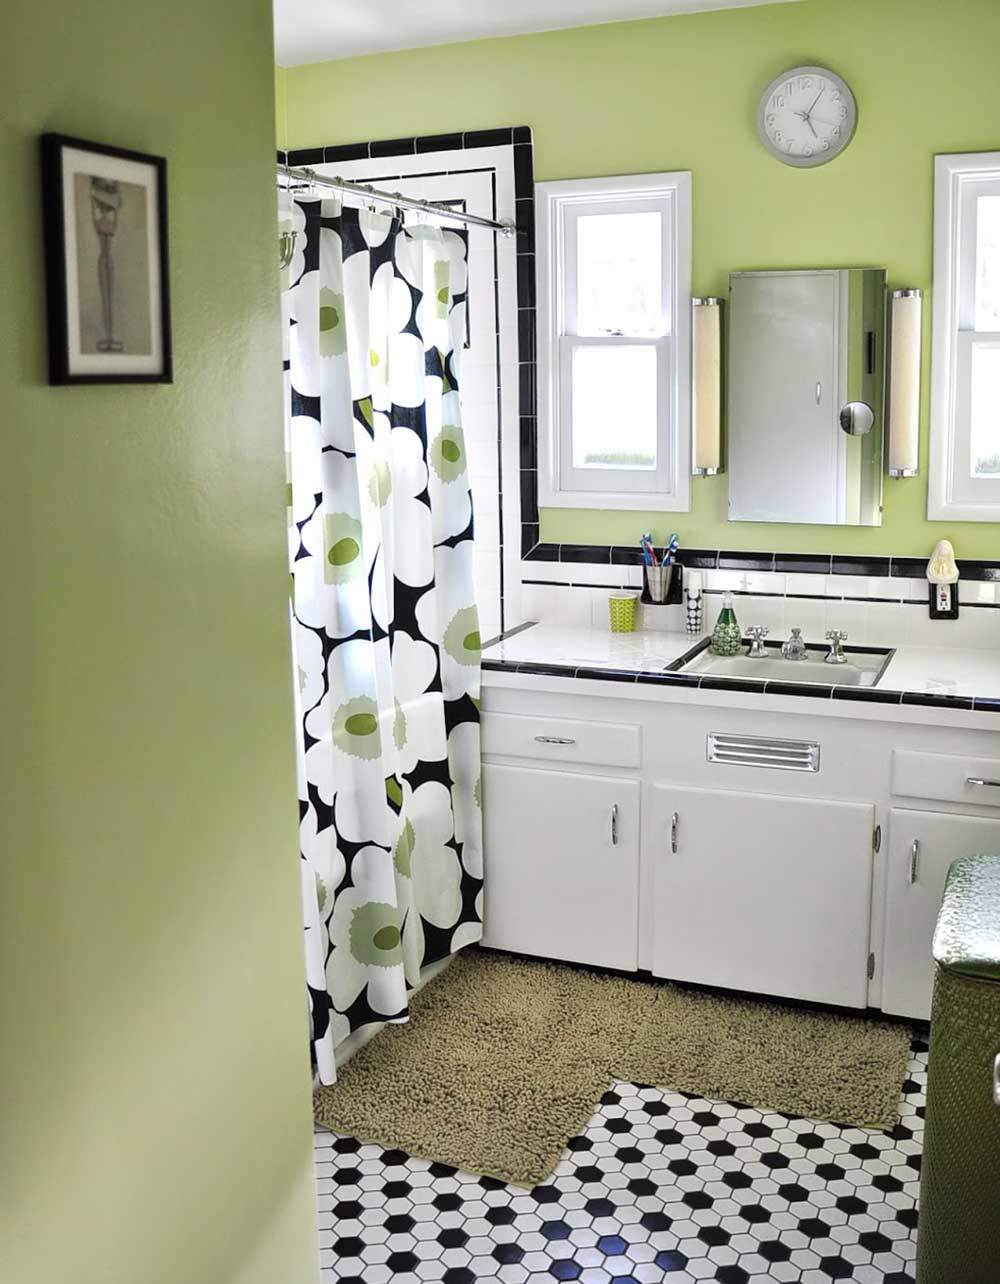 Black and white bathroom with accent color google search bathroom ideas pinterest white - White bathrooms ideas ...